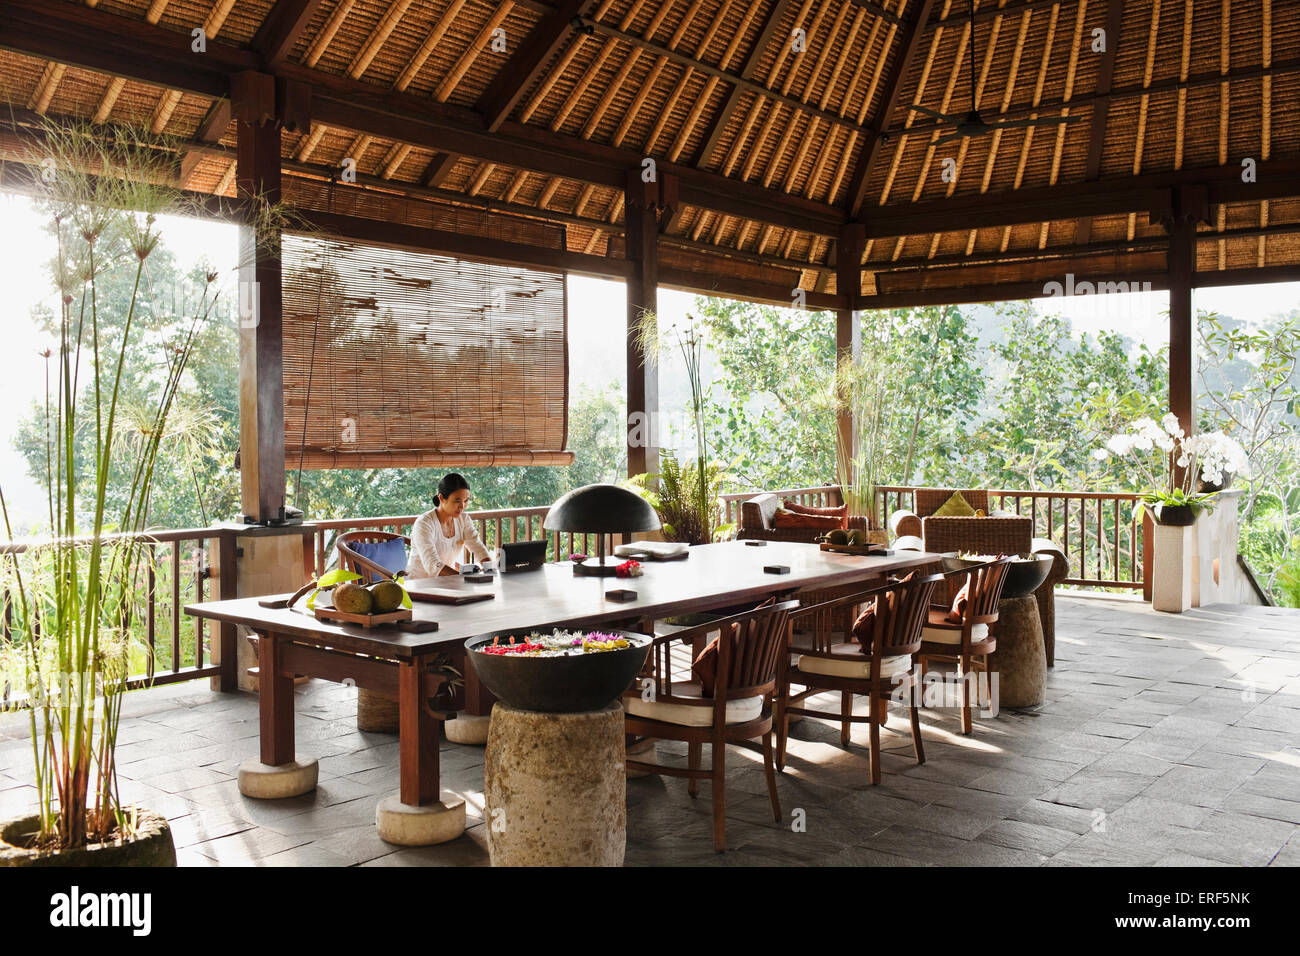 Balinese woman sits behind the desk at the reception area of Ubud Hanging Gardens, Bali, Indonesia. - Stock Image